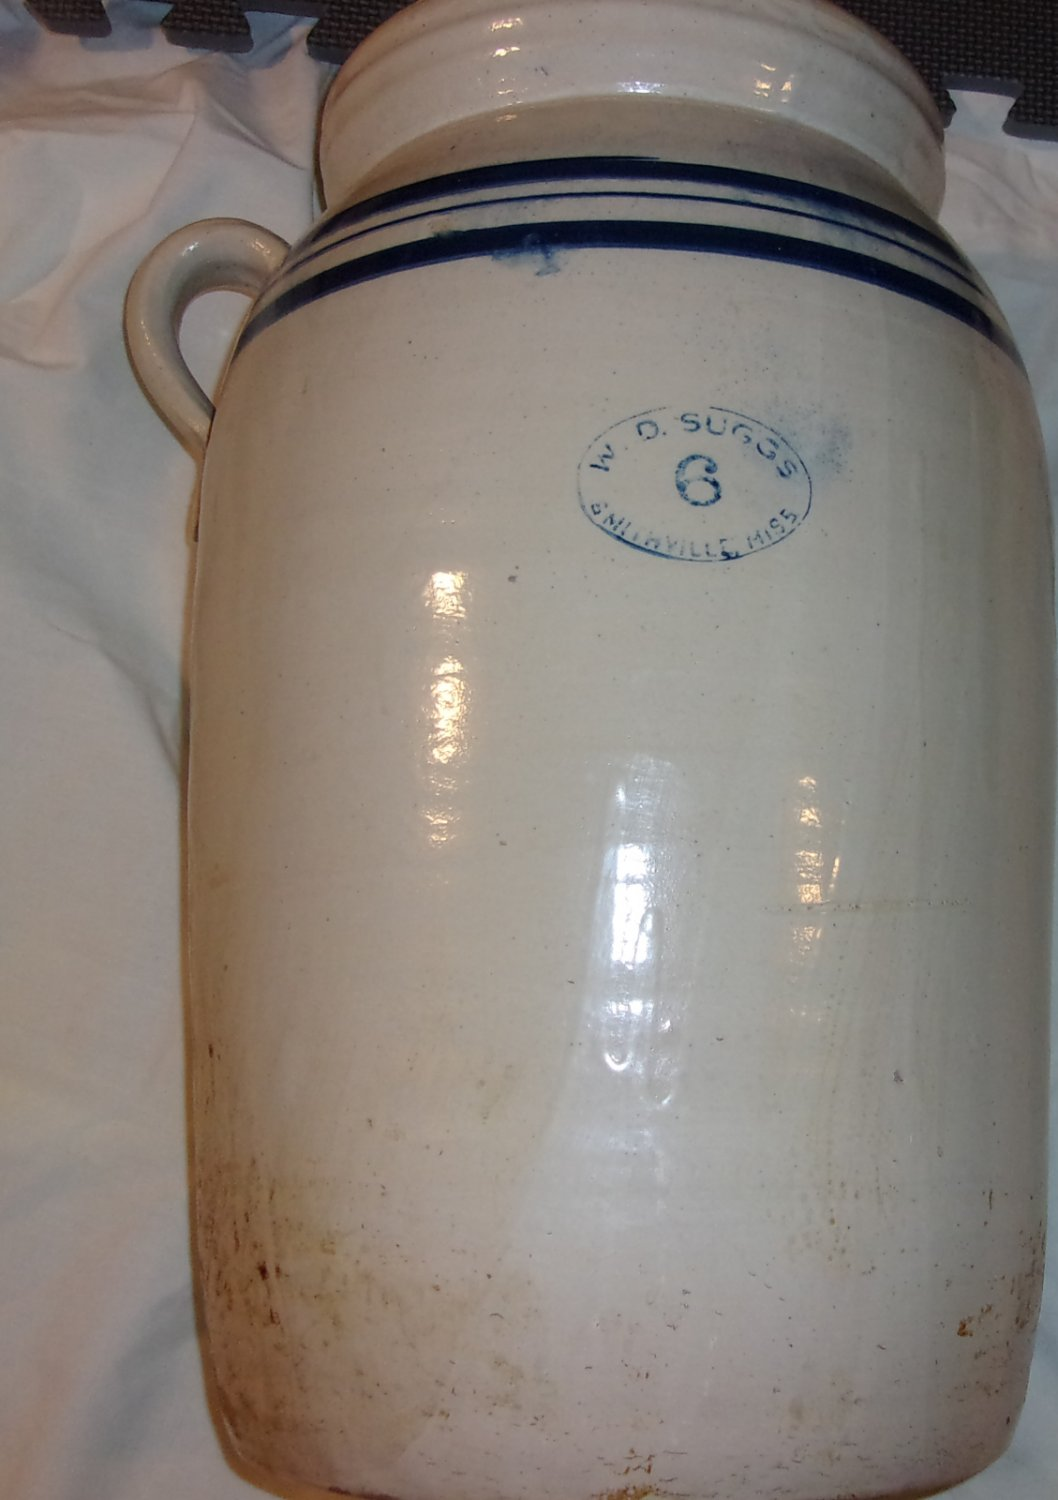 6 gallon Glazed WD Suggs Stoneware Butter Churn Crock Smithville, MS pottery